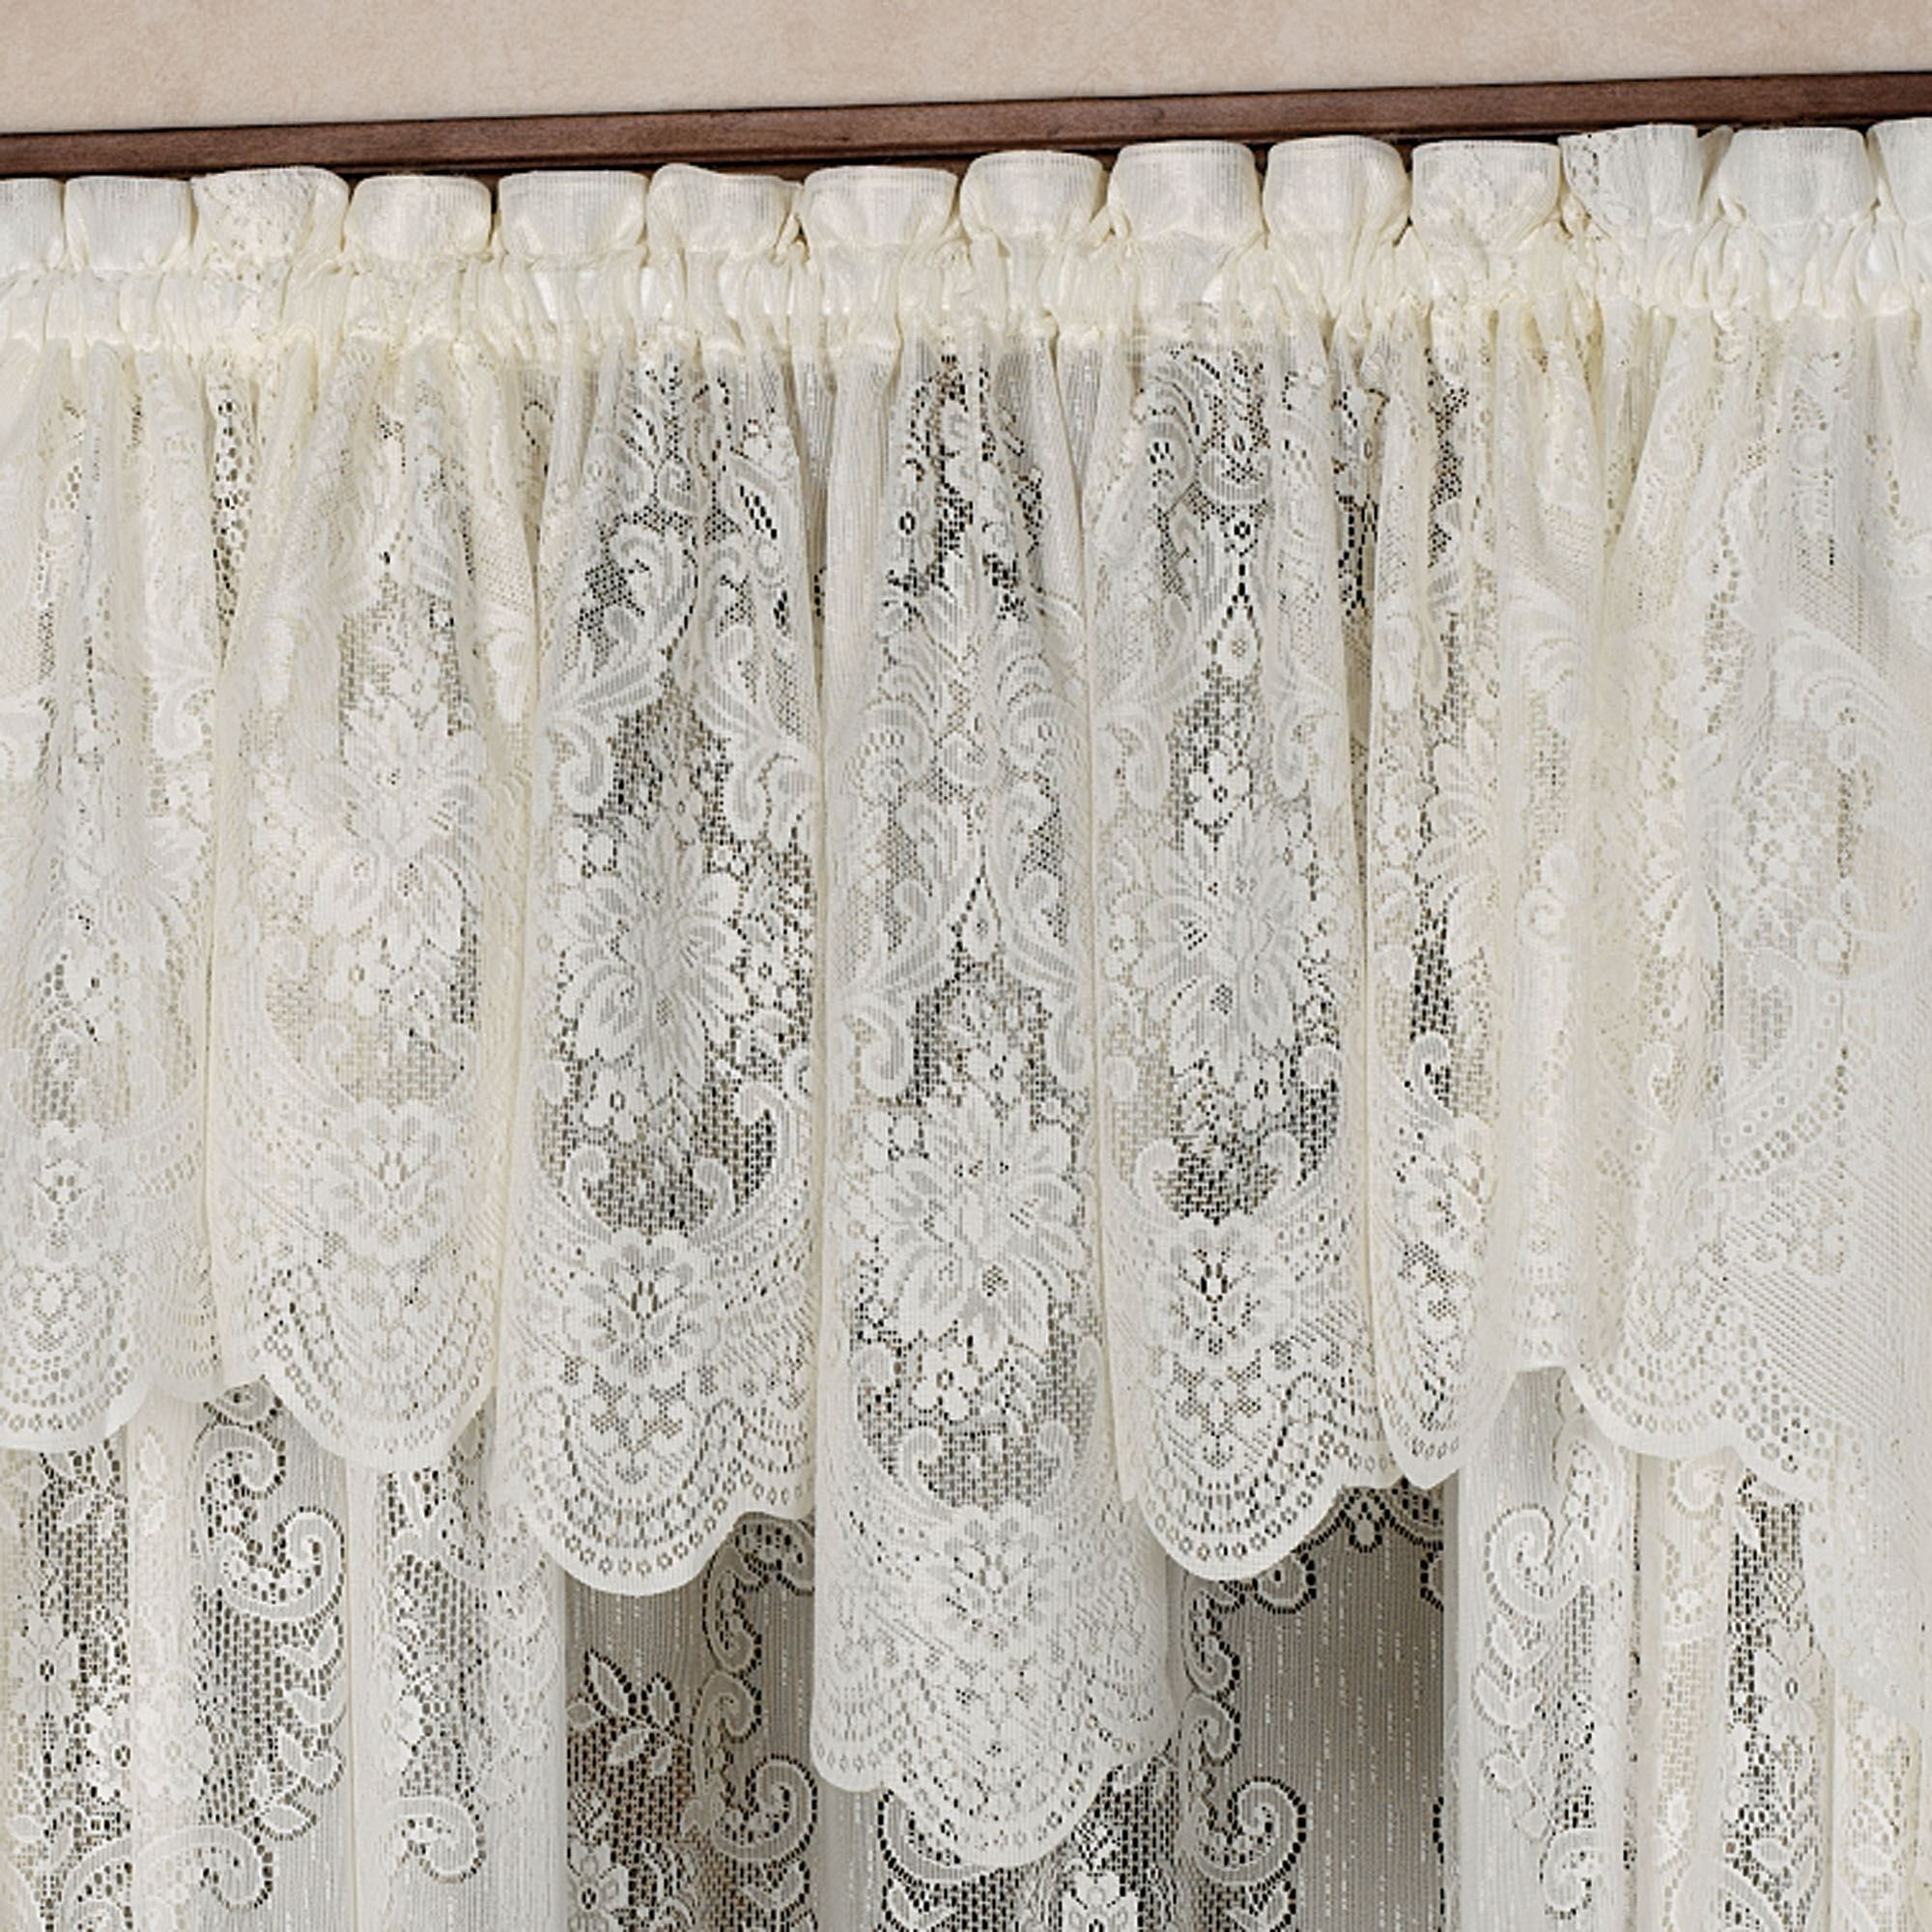 panels with curtains lace decorative valance projects stitching window